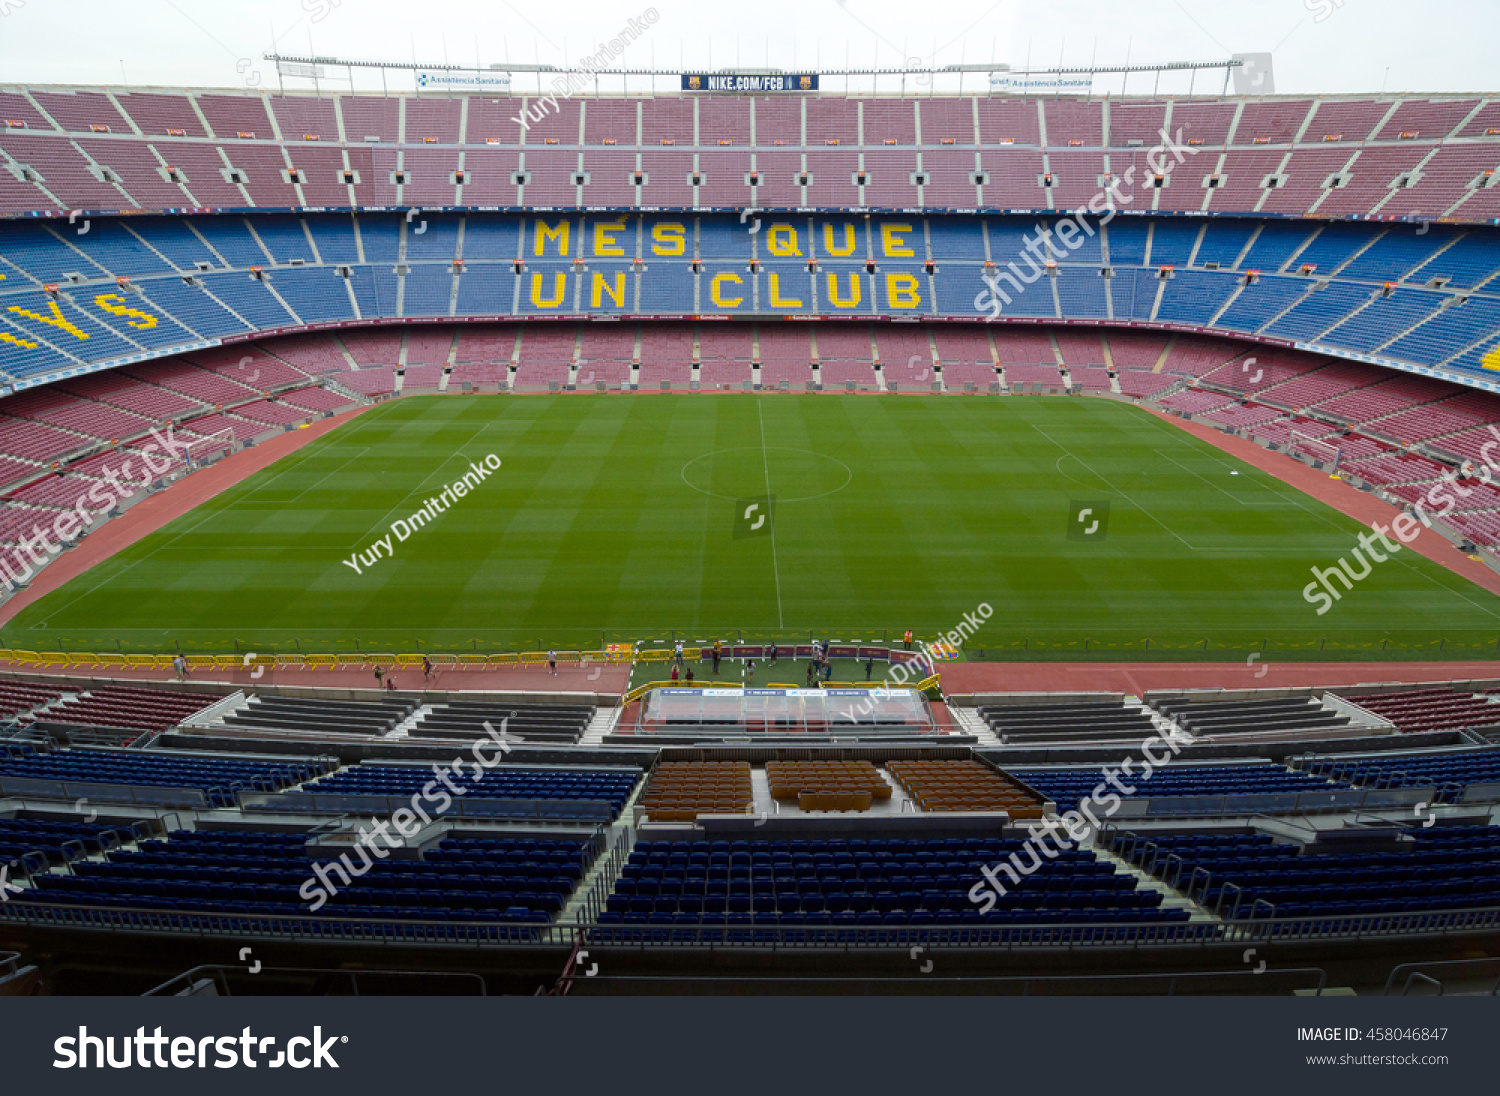 Mes Que Un Club Barcelona September 22 2014 One Stands Stock Photo Edit Now